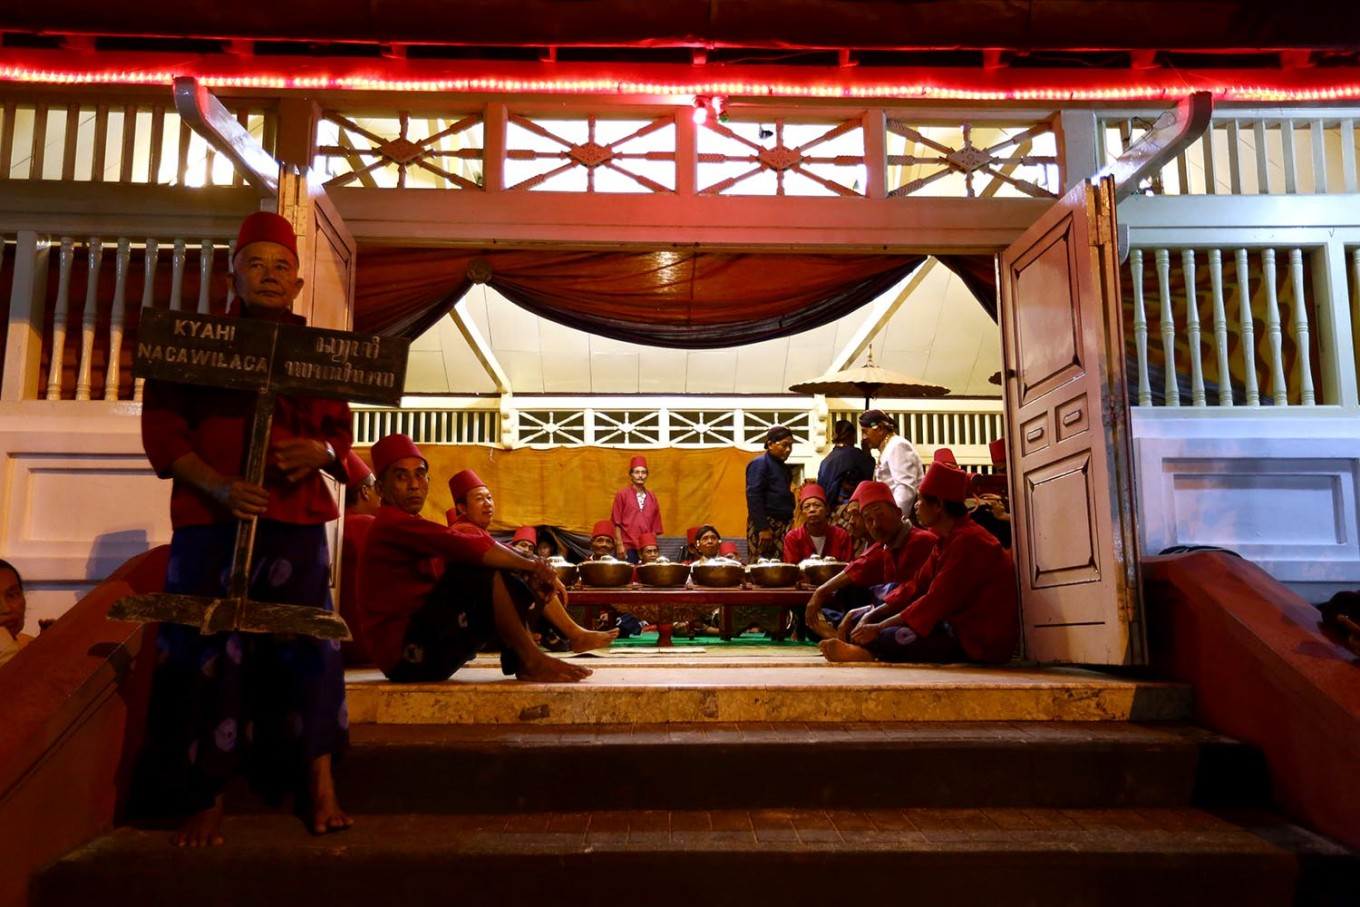 Courtiers are ready to carry the Kyai Nagawilaga gamelan back to palace after being set at Kauman Grand Mosque in Yogyakarta on Nov. 30. JP/ Wienda Parwitasari